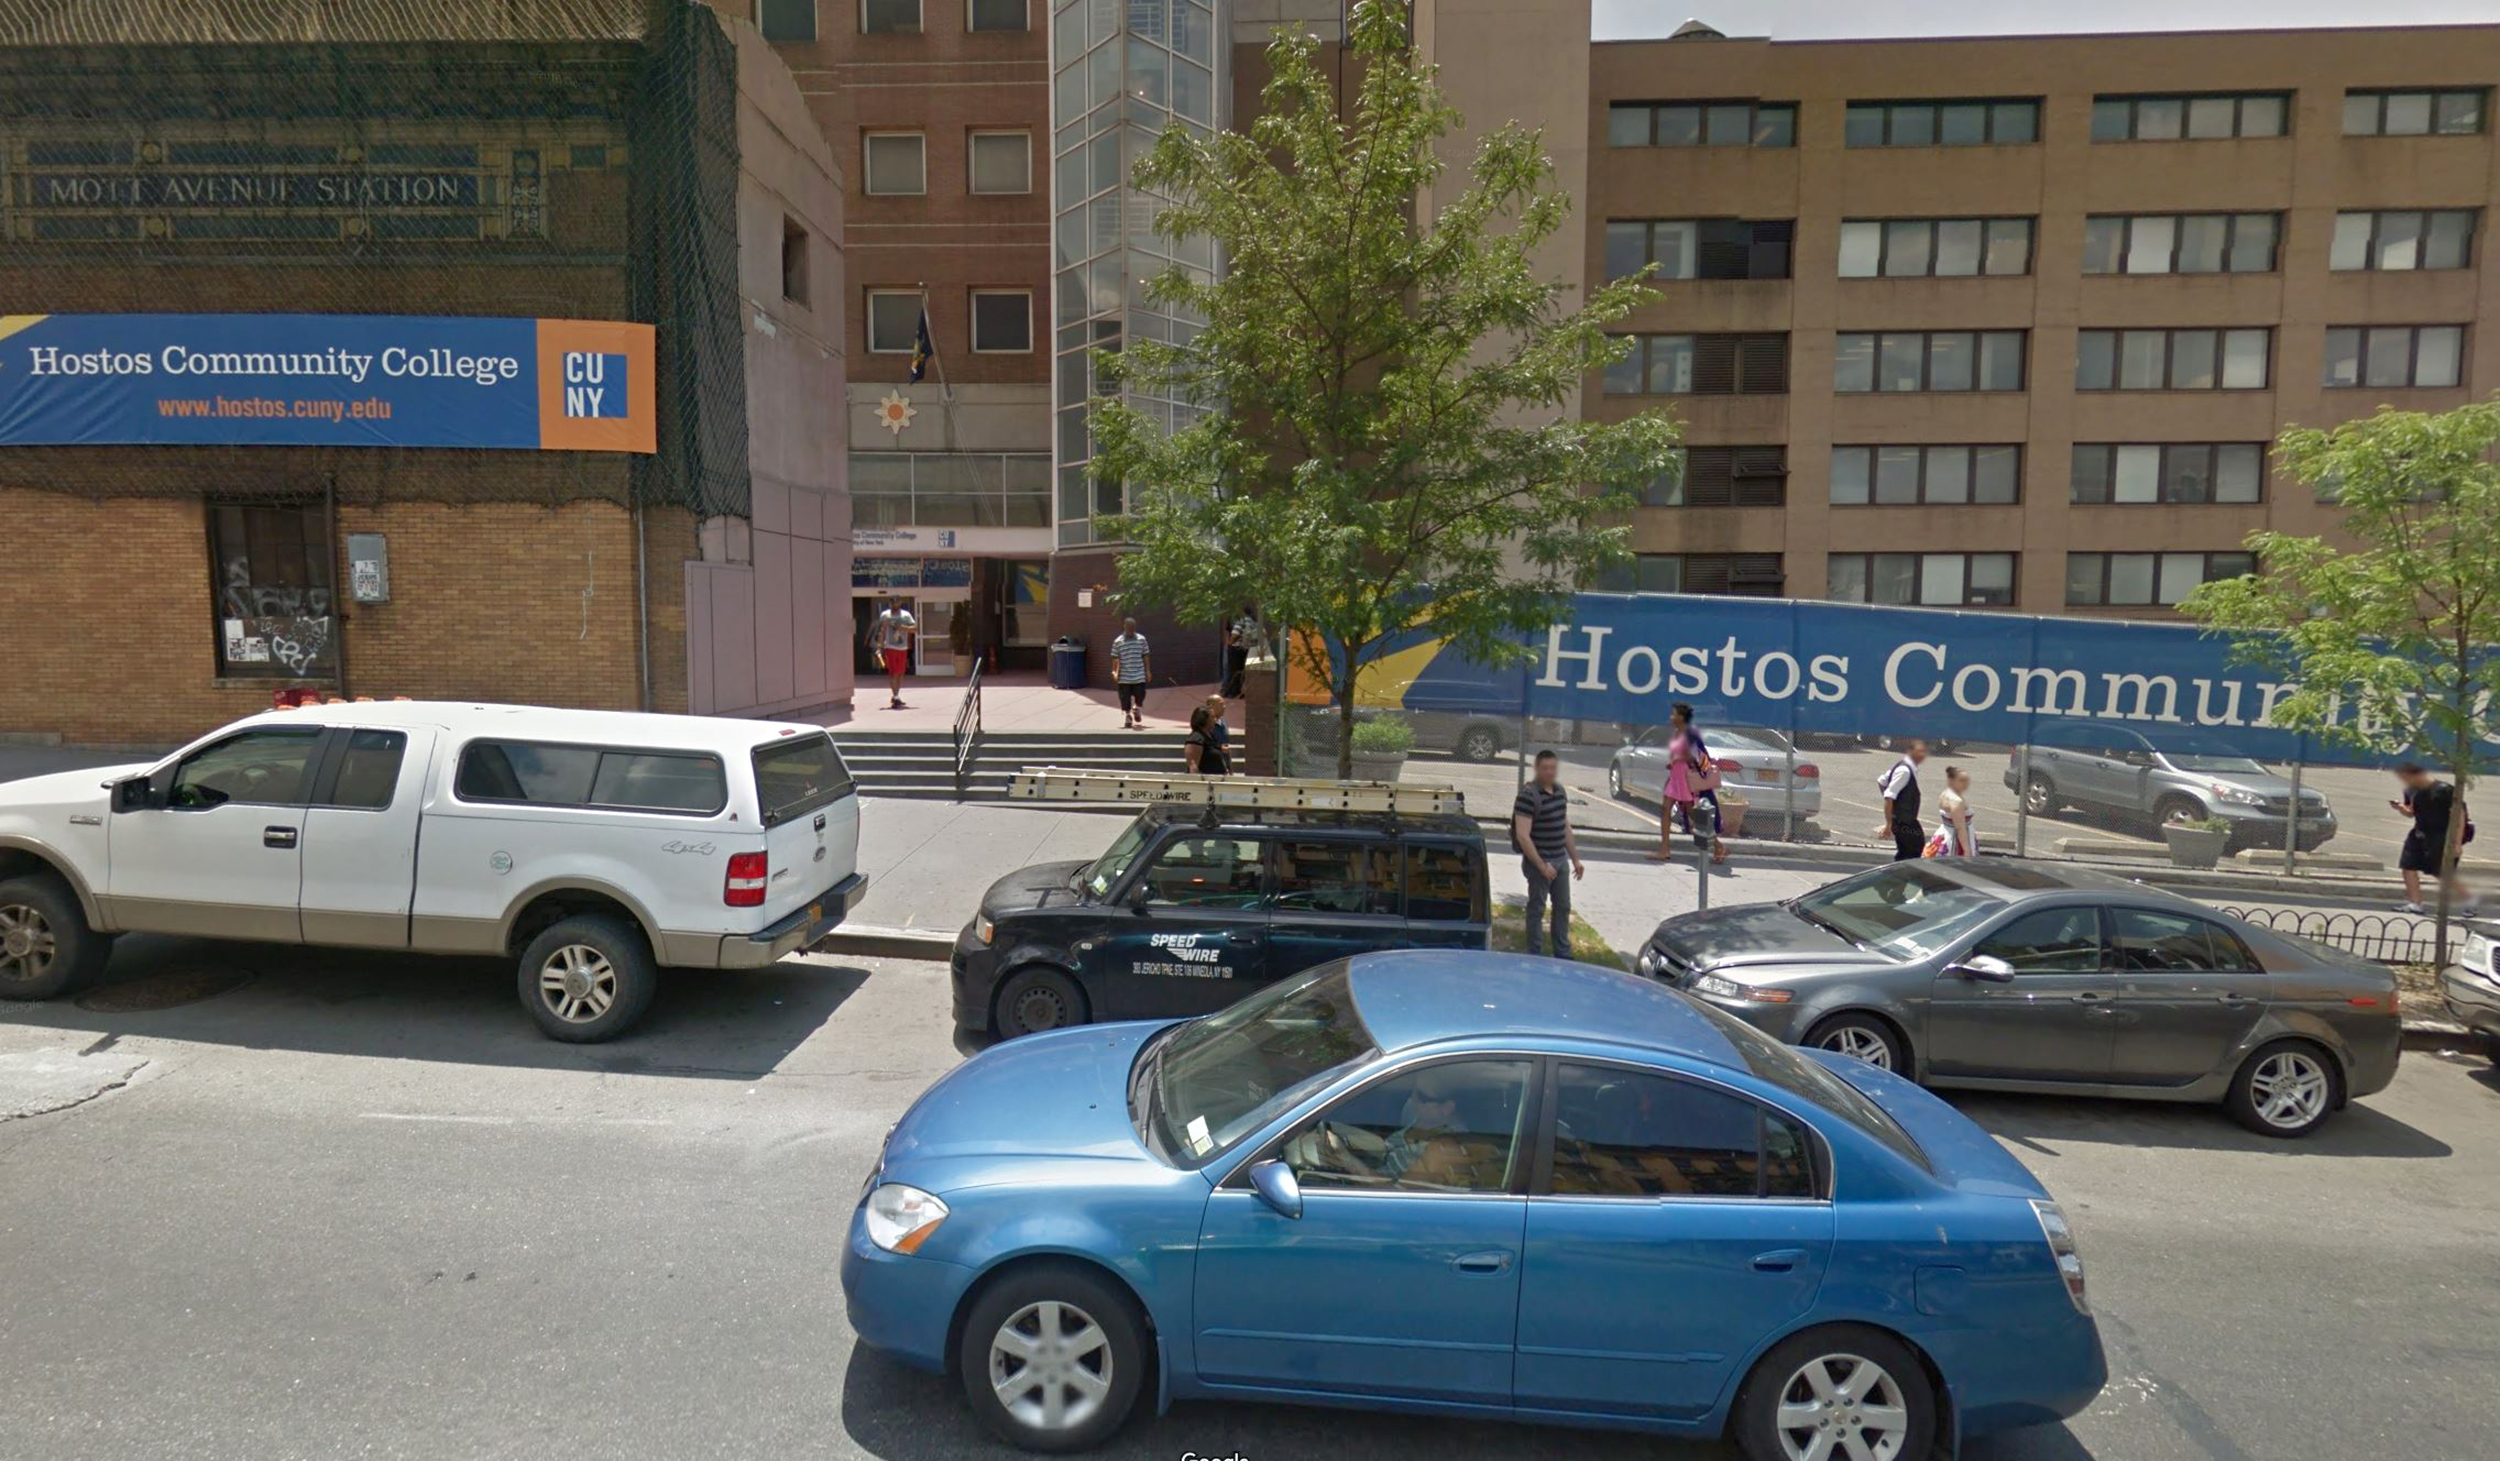 Image: Hostos Community COllege